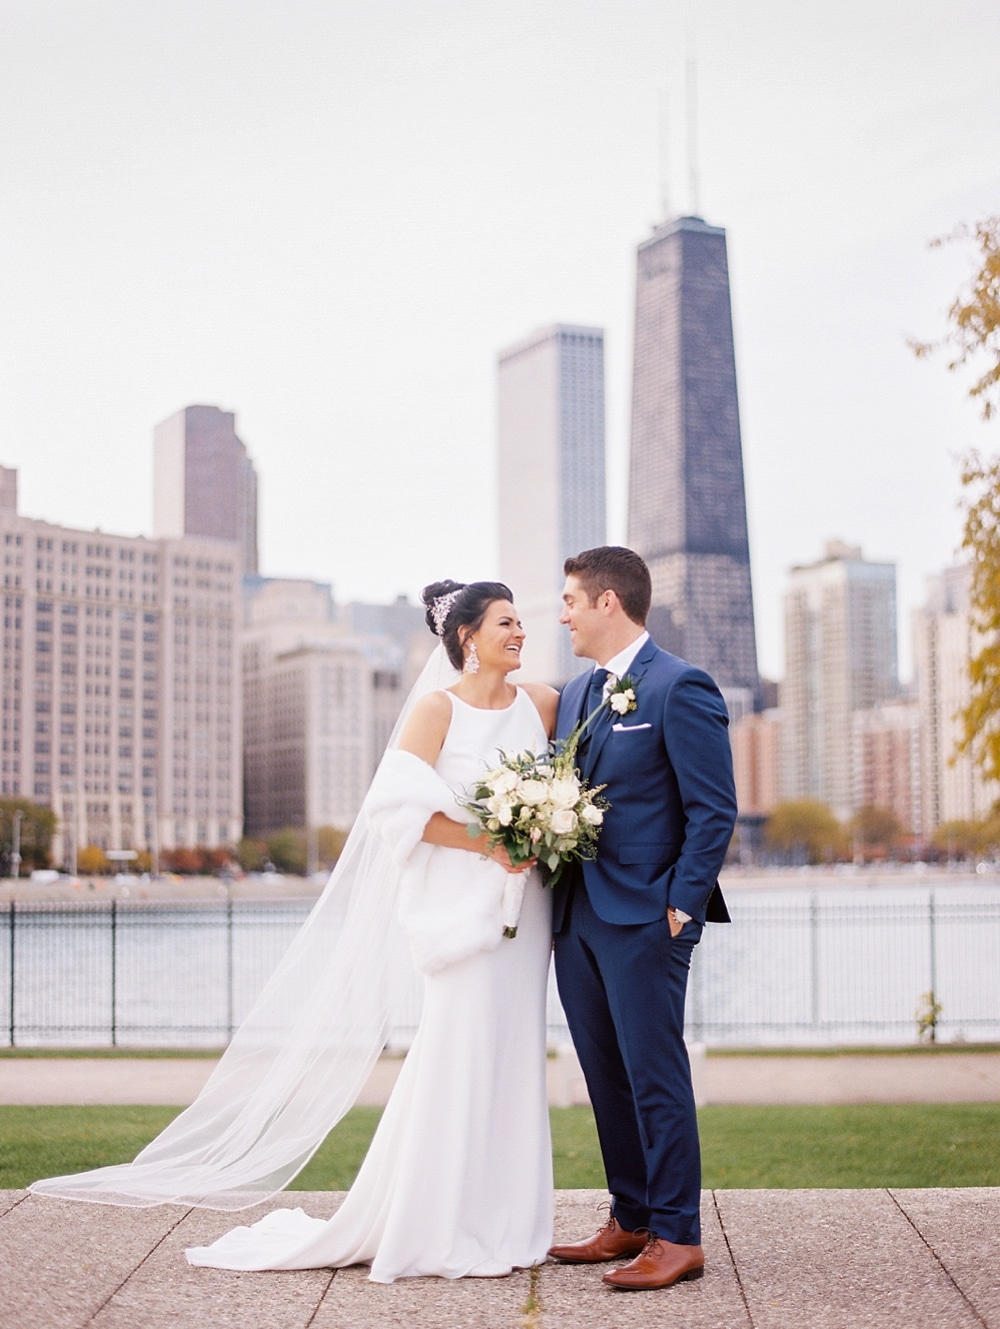 Kristin-La-Voie-Photography-chicago-wedding-photographer-73